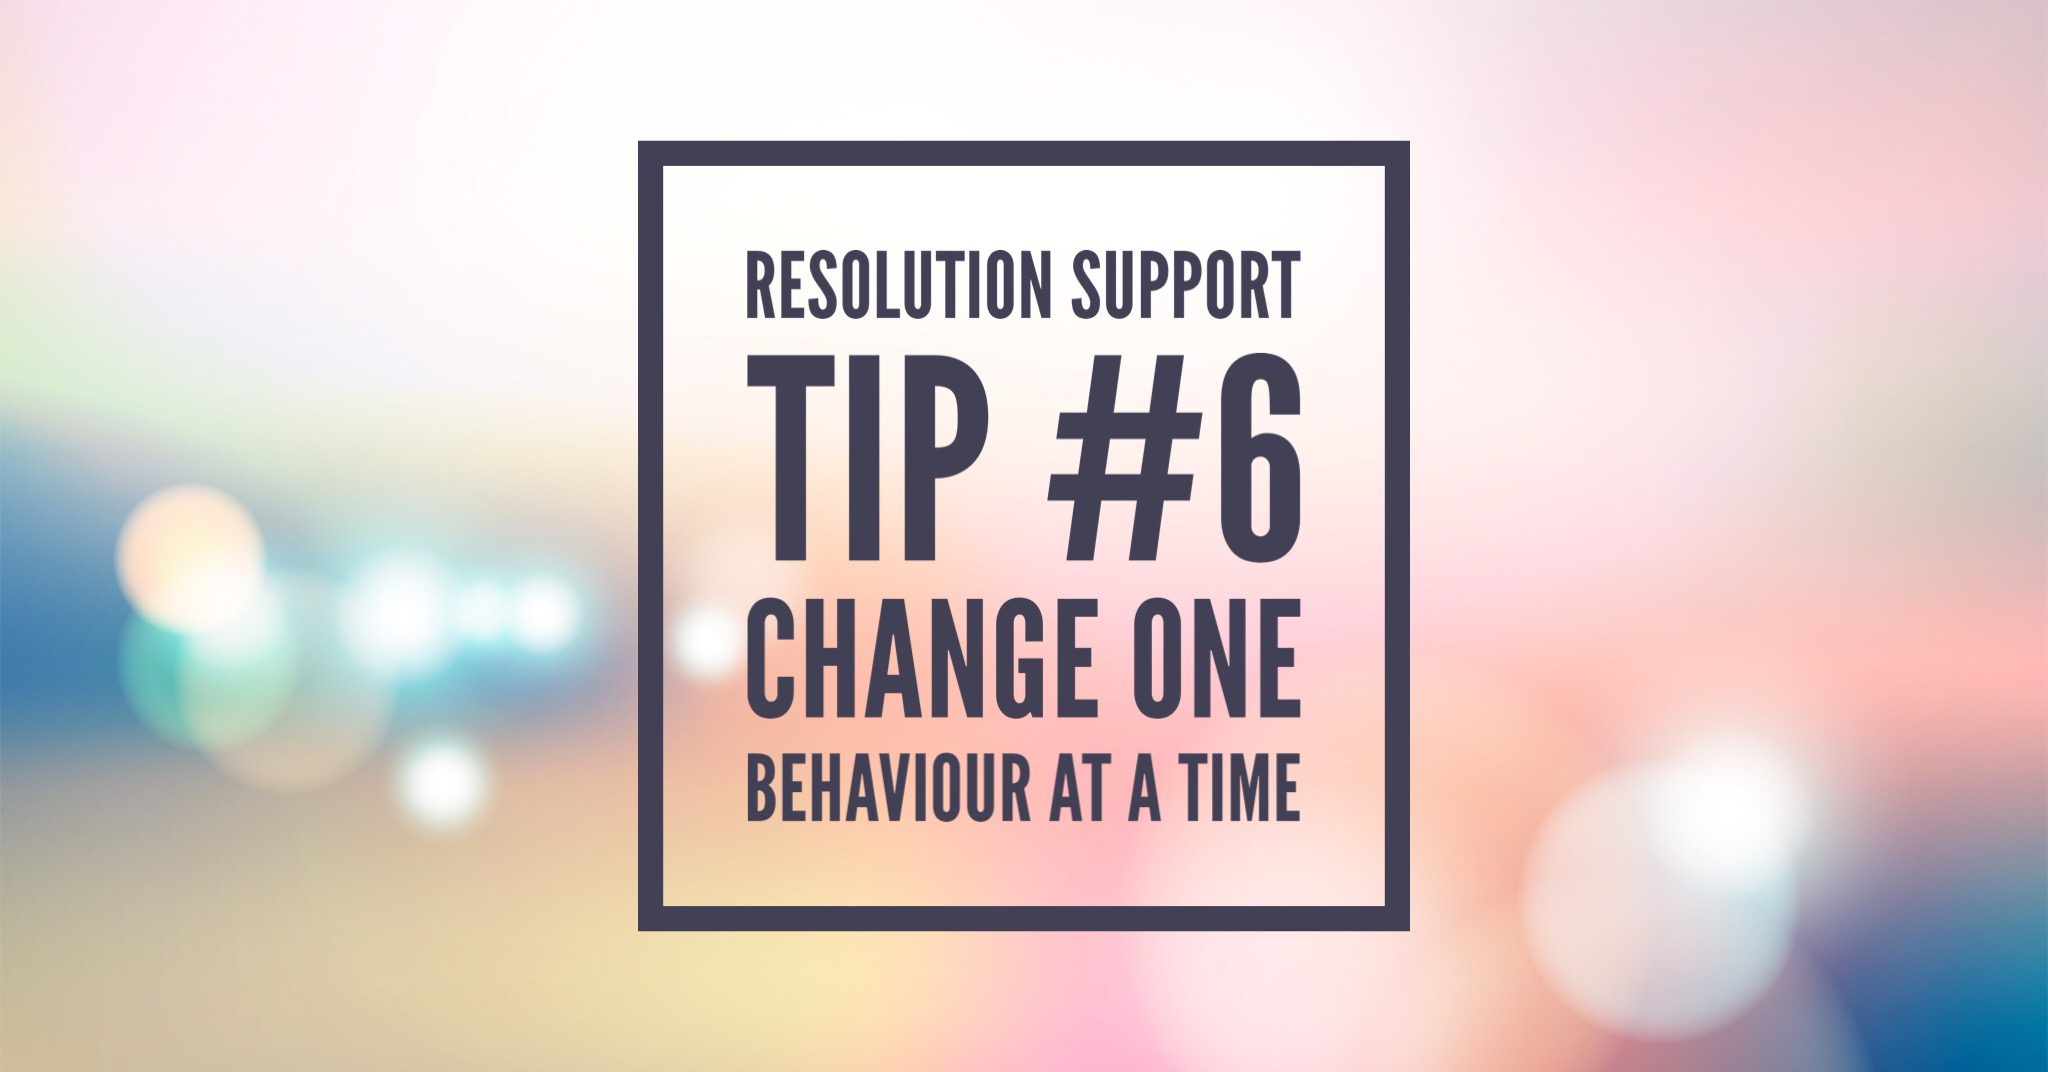 Resolution Support Tip #6: Change one behaviour at a time